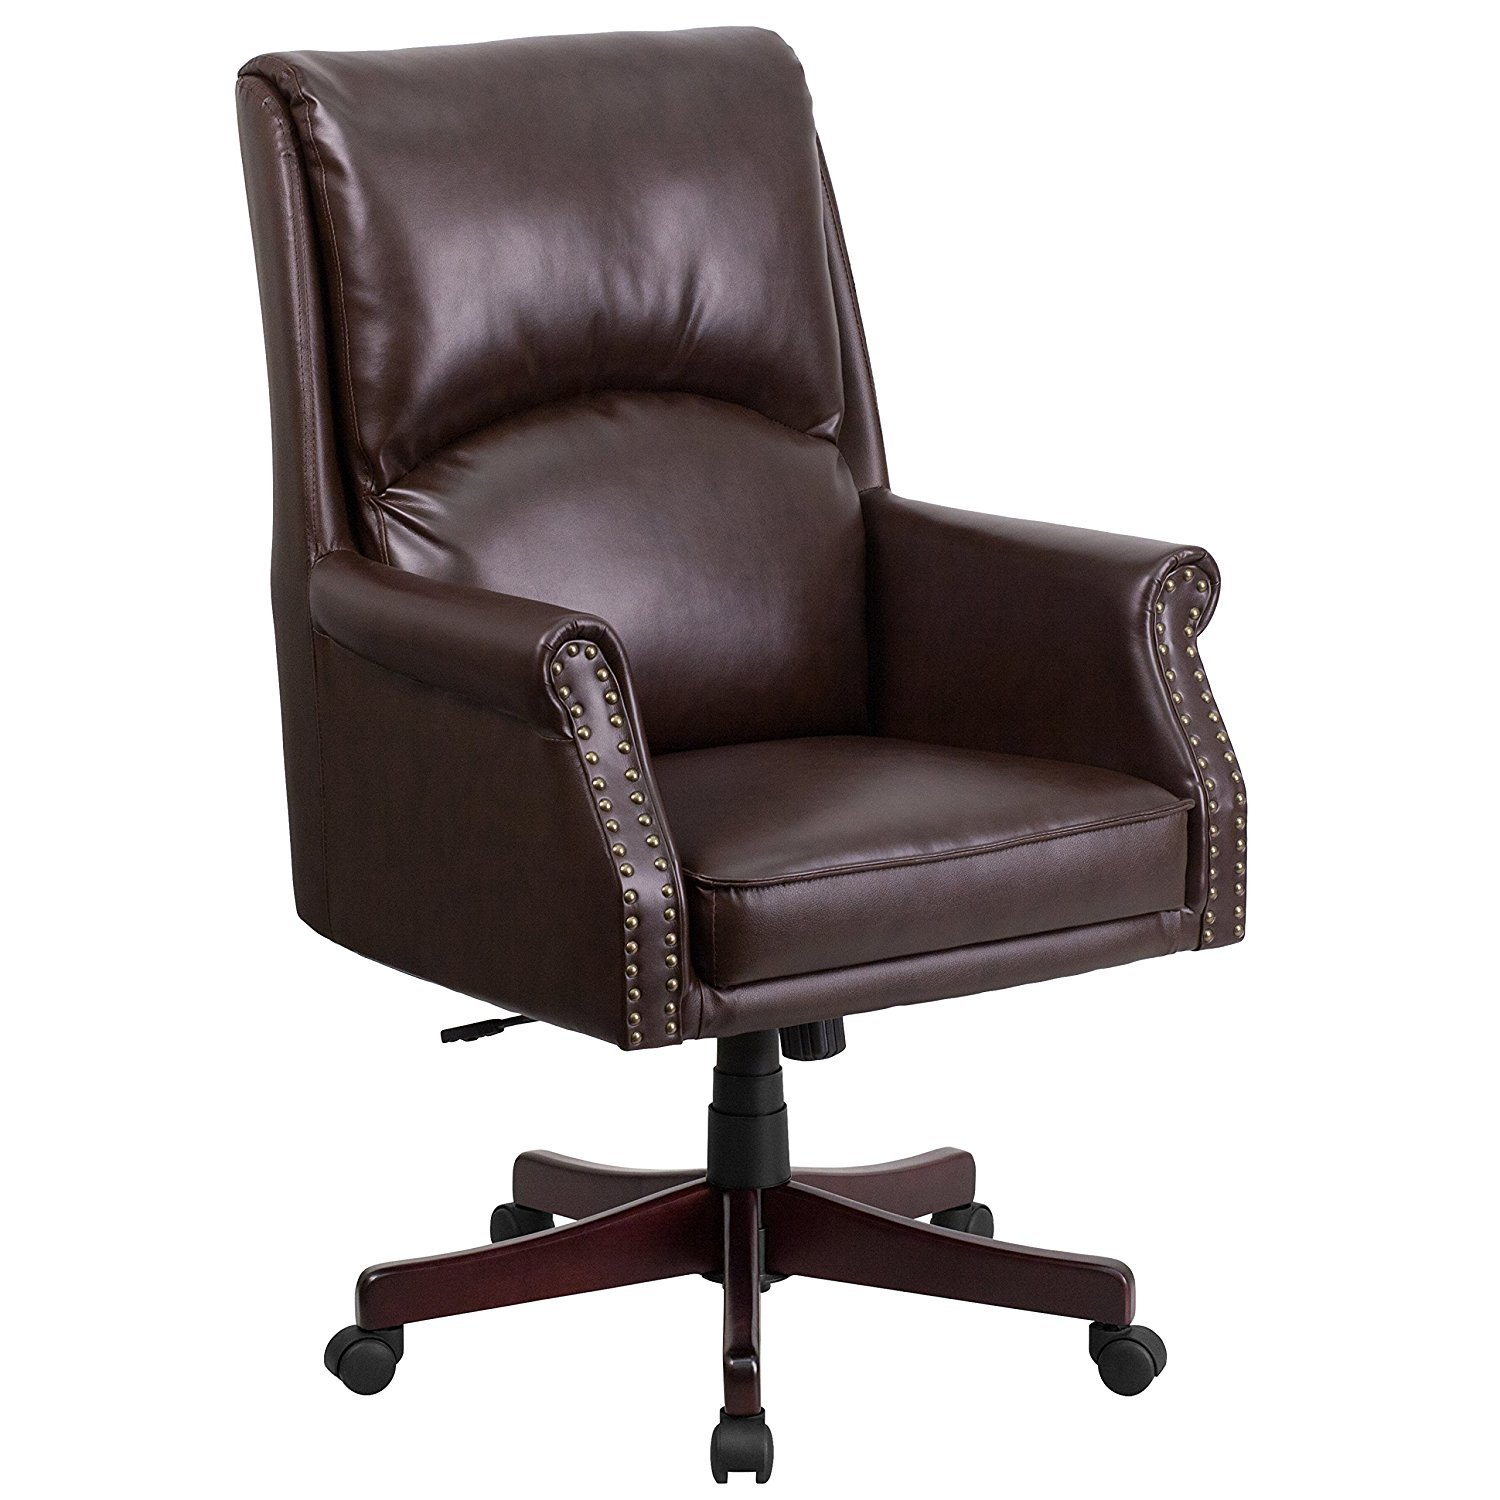 Executive Chairs Best Executive Chair For Lower Back Pain Home Furniture